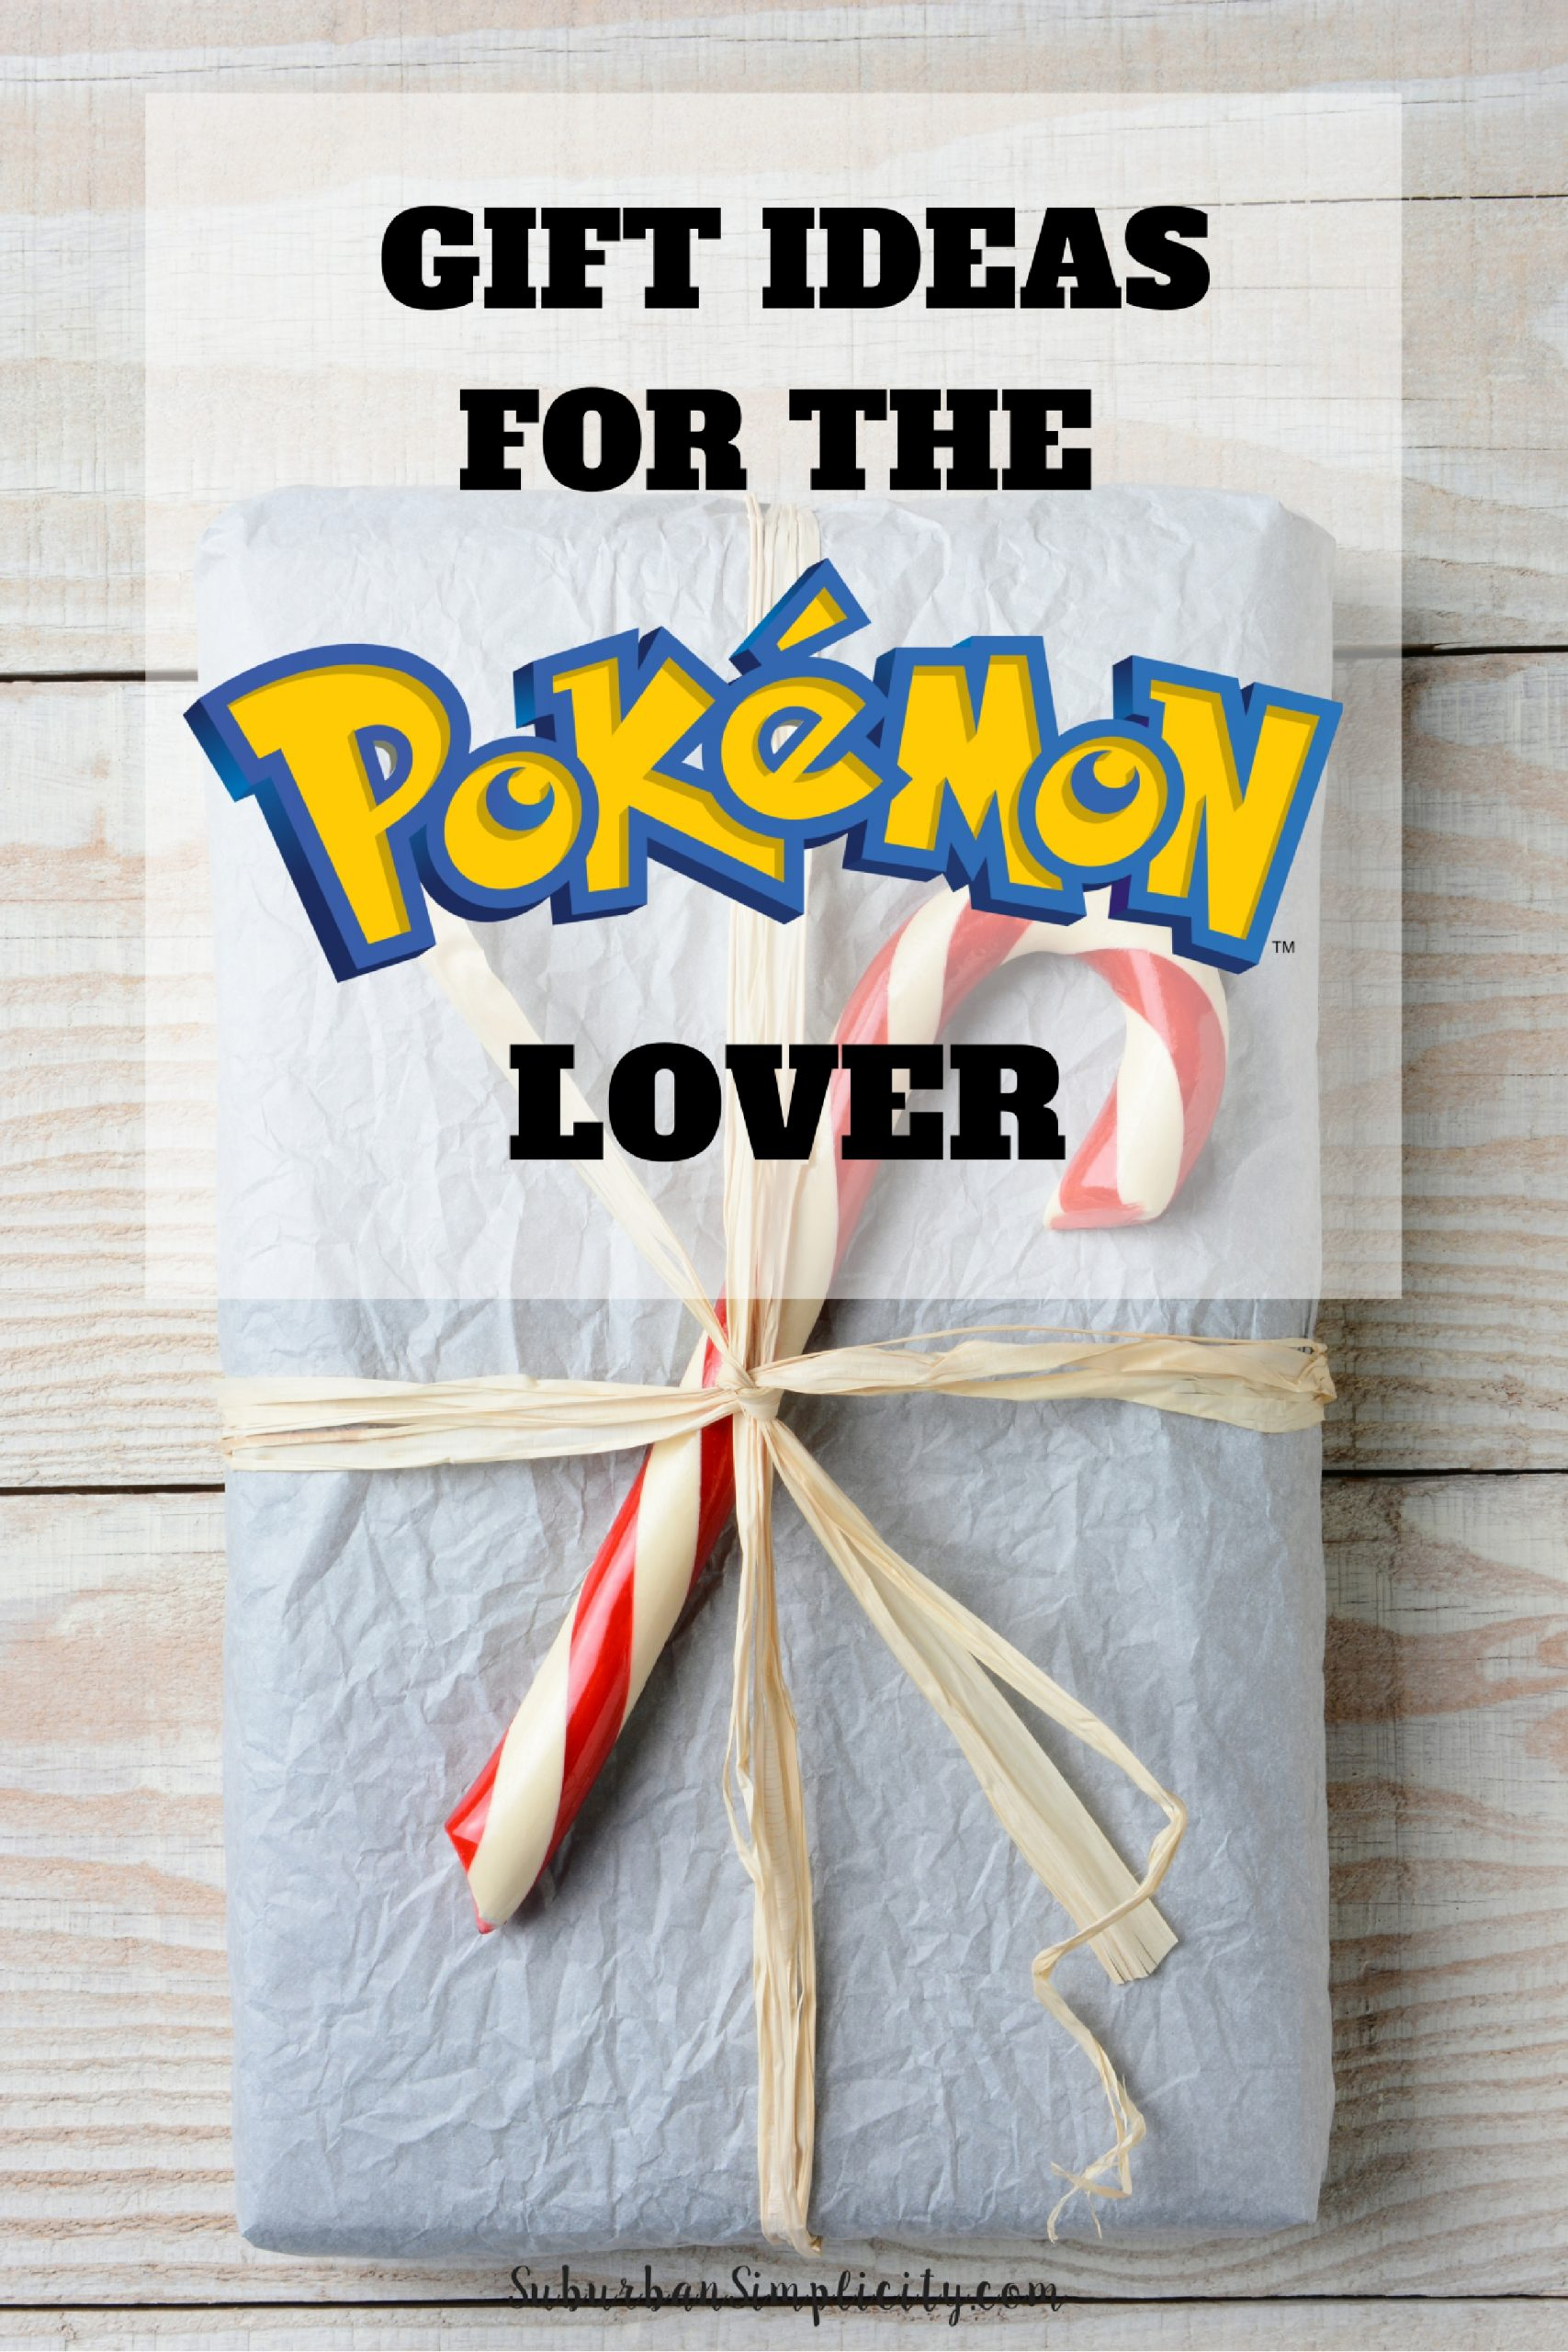 Gift Ideas For The Pokemon Lover Gifts Ideas For Pokemon